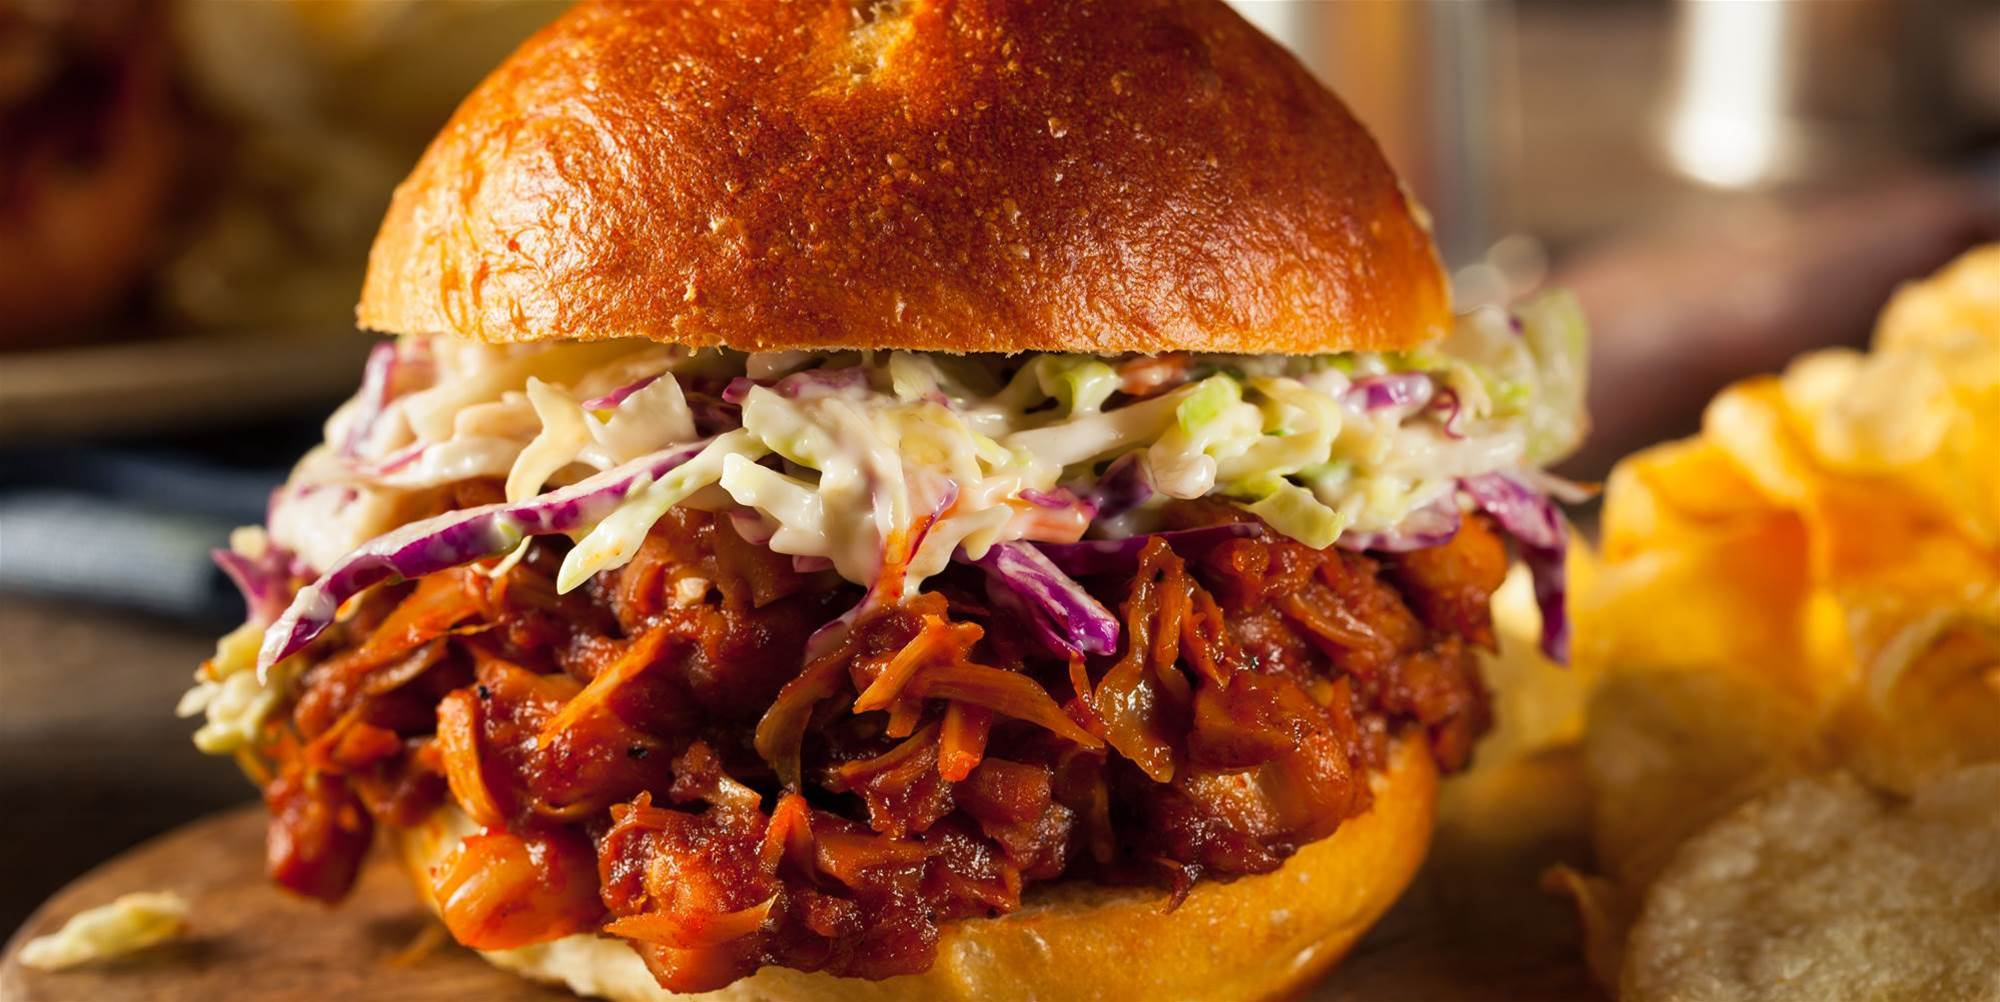 Jackfruit Is the Game-Changing Vegan Ingredient That Perfectly Mimics Meat